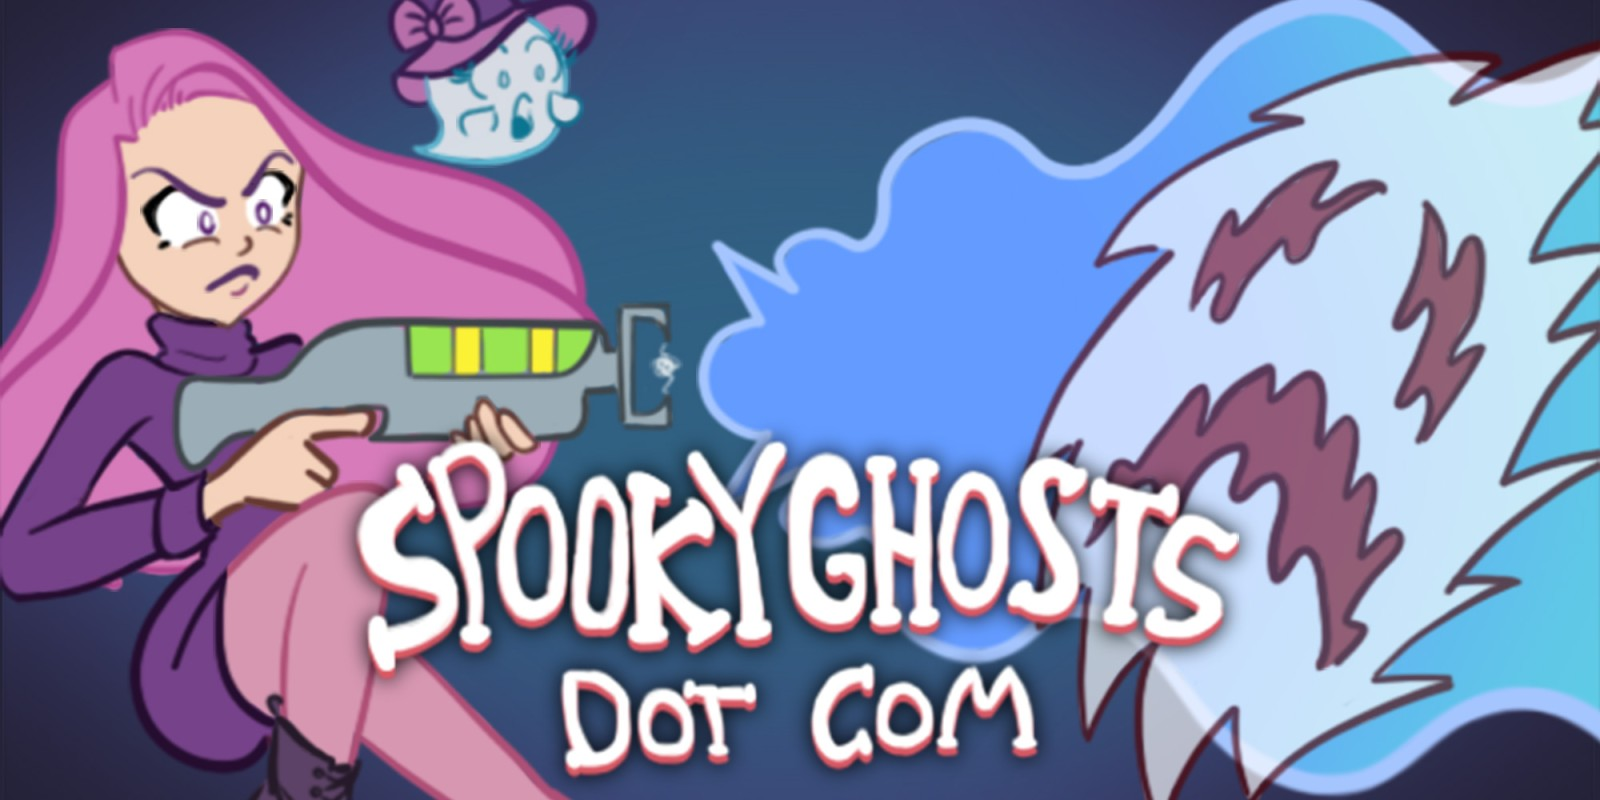 Spooky Ghosts Dot Com